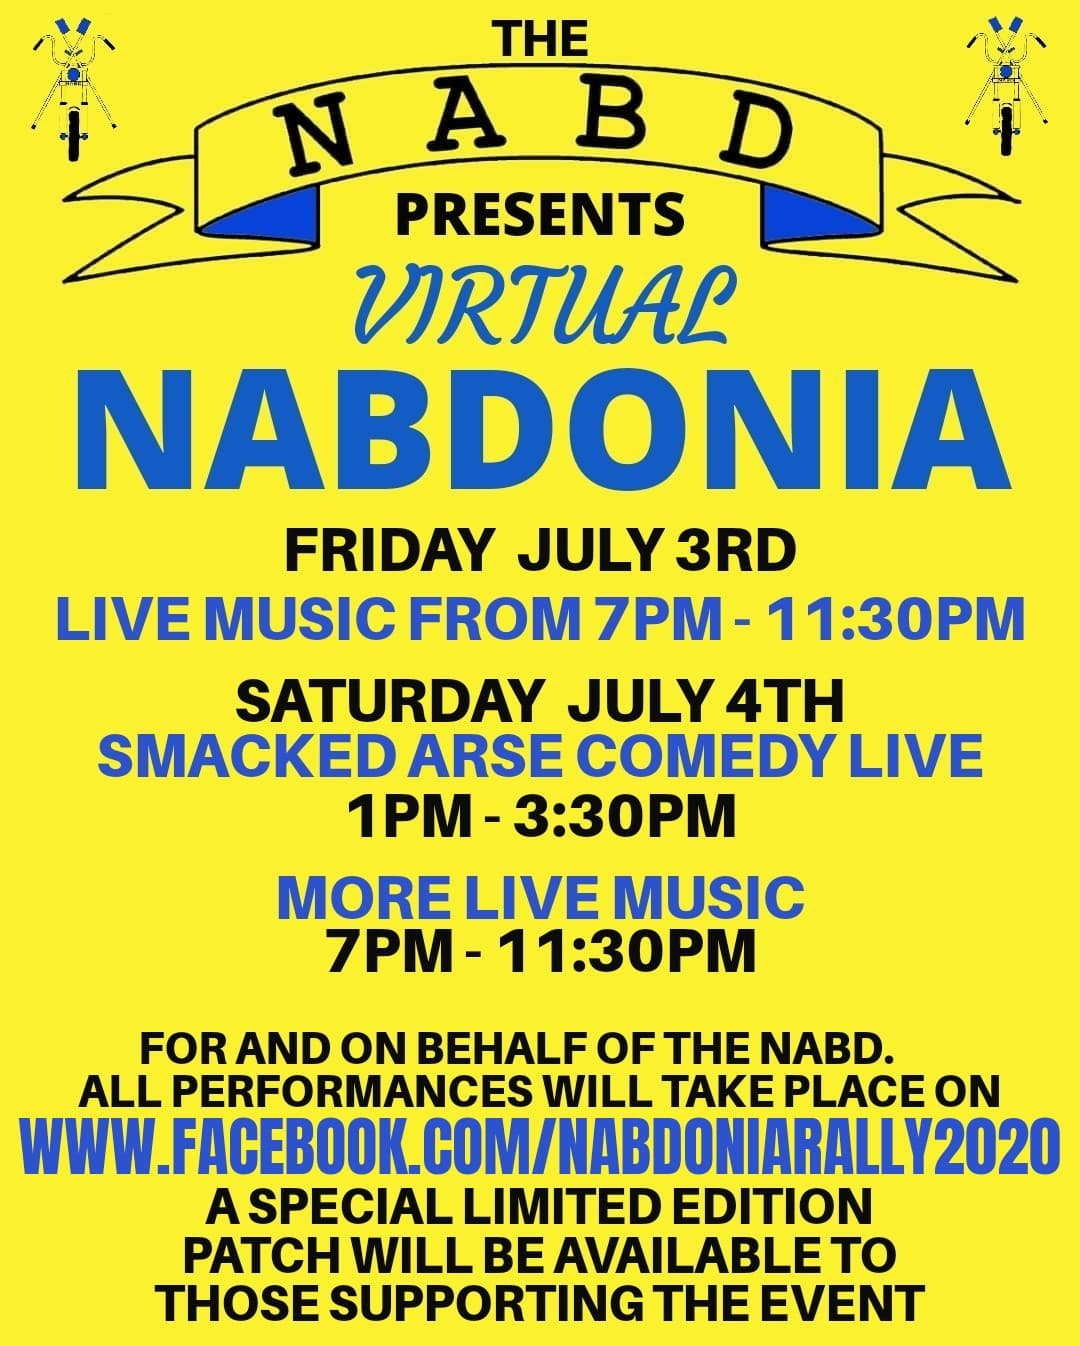 Virtual Nabdonia Event List